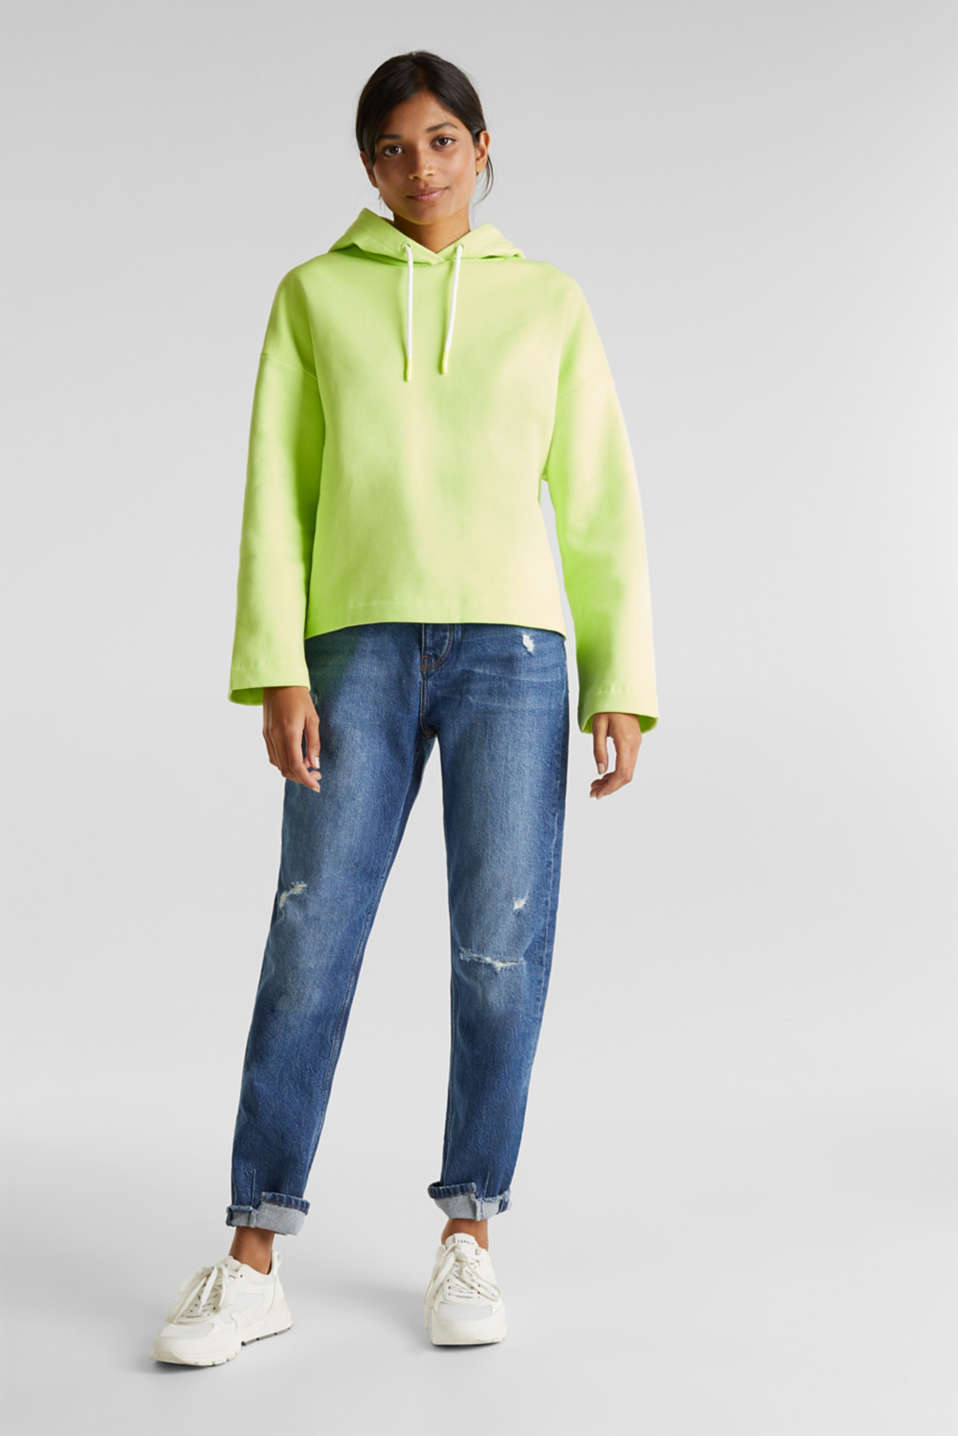 NEON boxy sweatshirt with a hood, 100% cotton, LIME YELLOW, detail image number 1